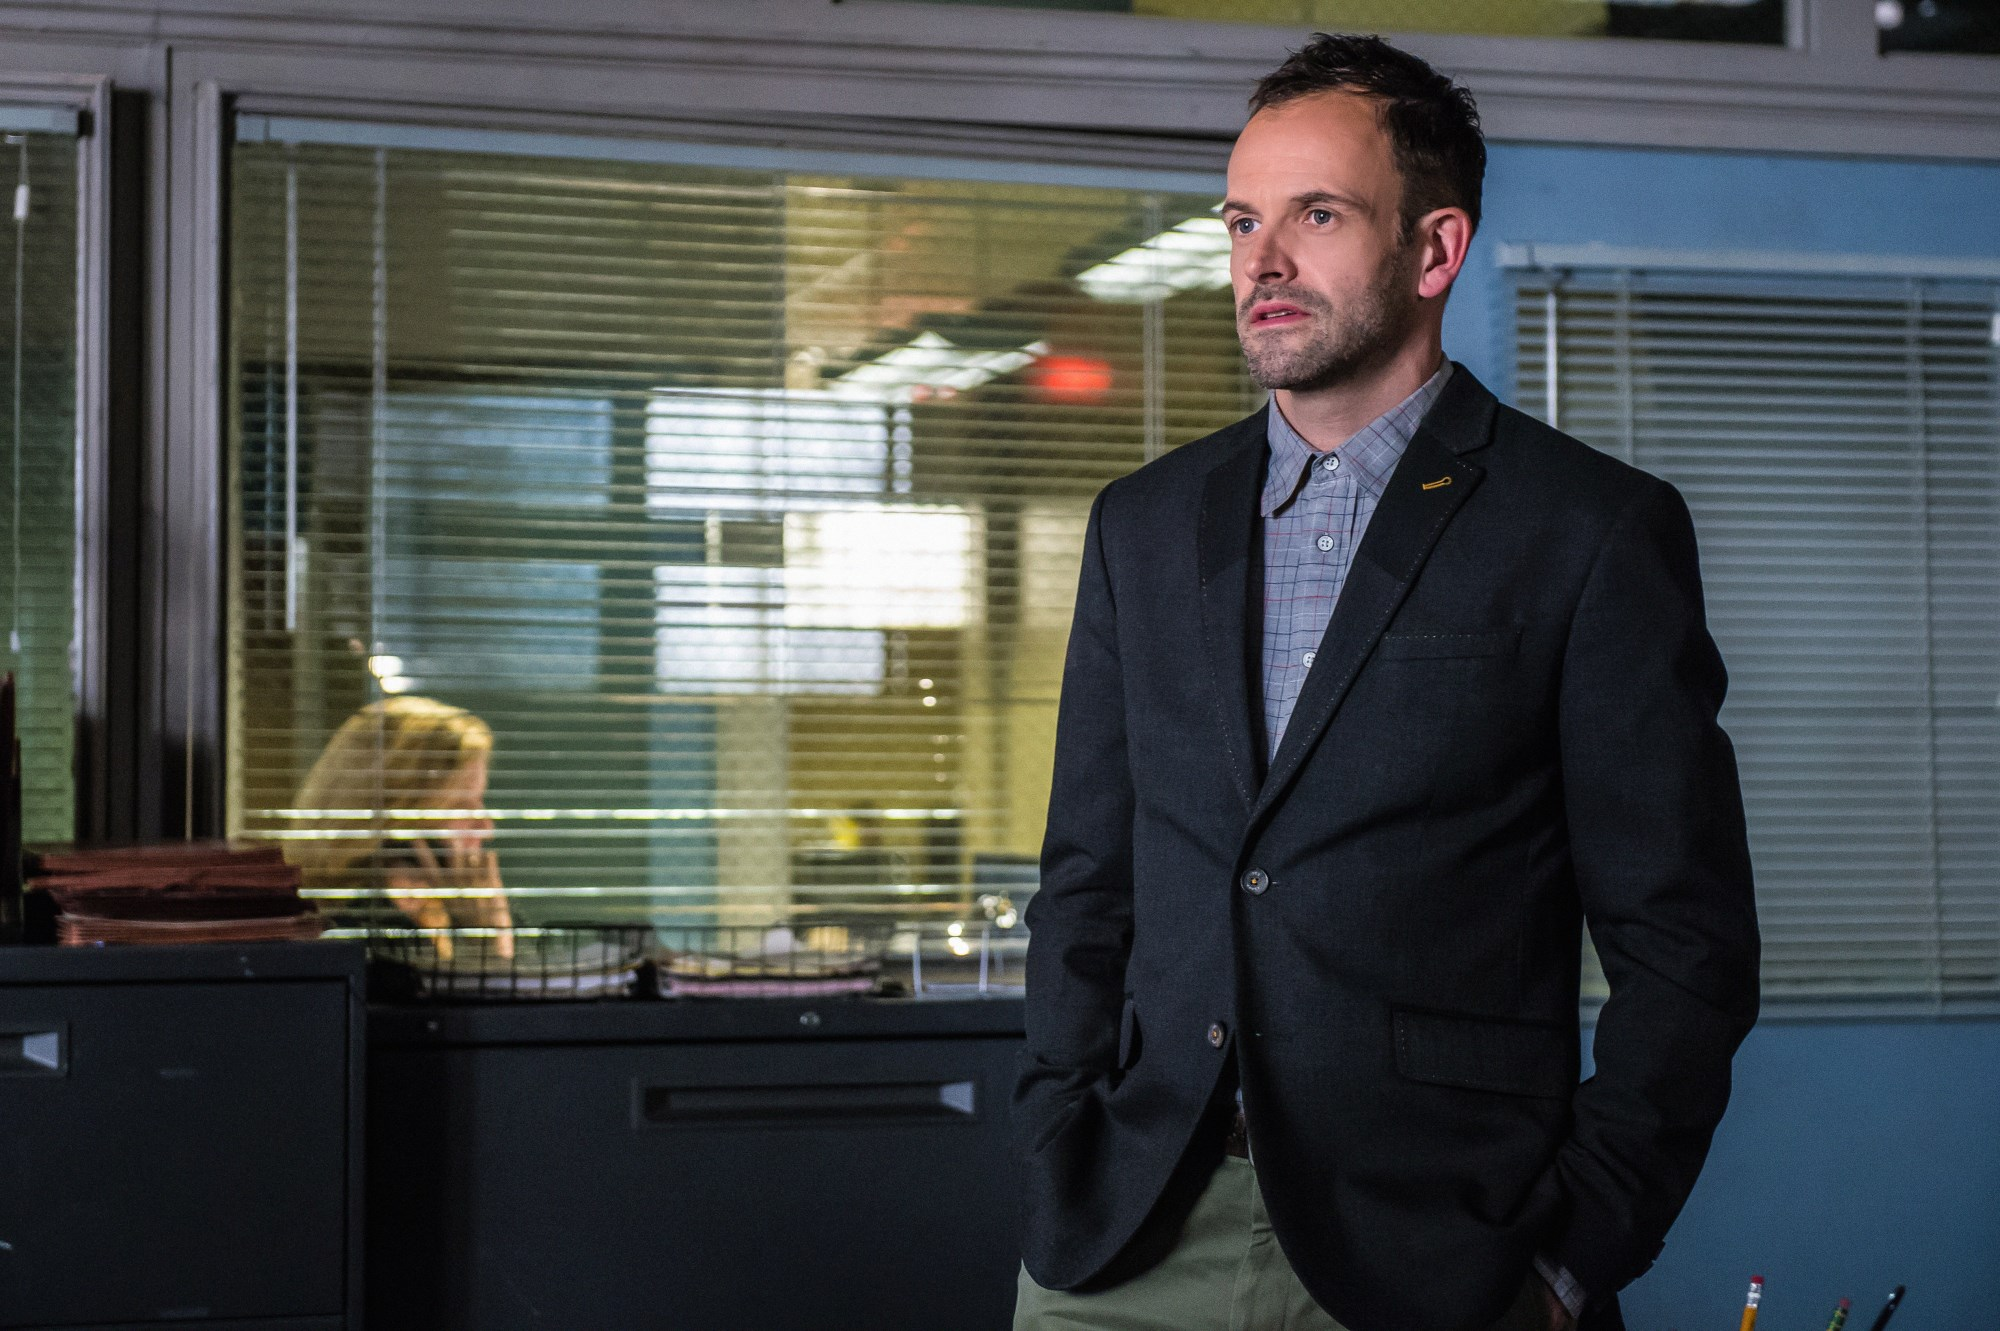 elementary dating Elementary is an american procedural drama series that presents a  contemporary update of sir  in season four, it is revealed mid-season that  gregson is now dating paige cowen, a former detective who quit after her unit  was accused of.